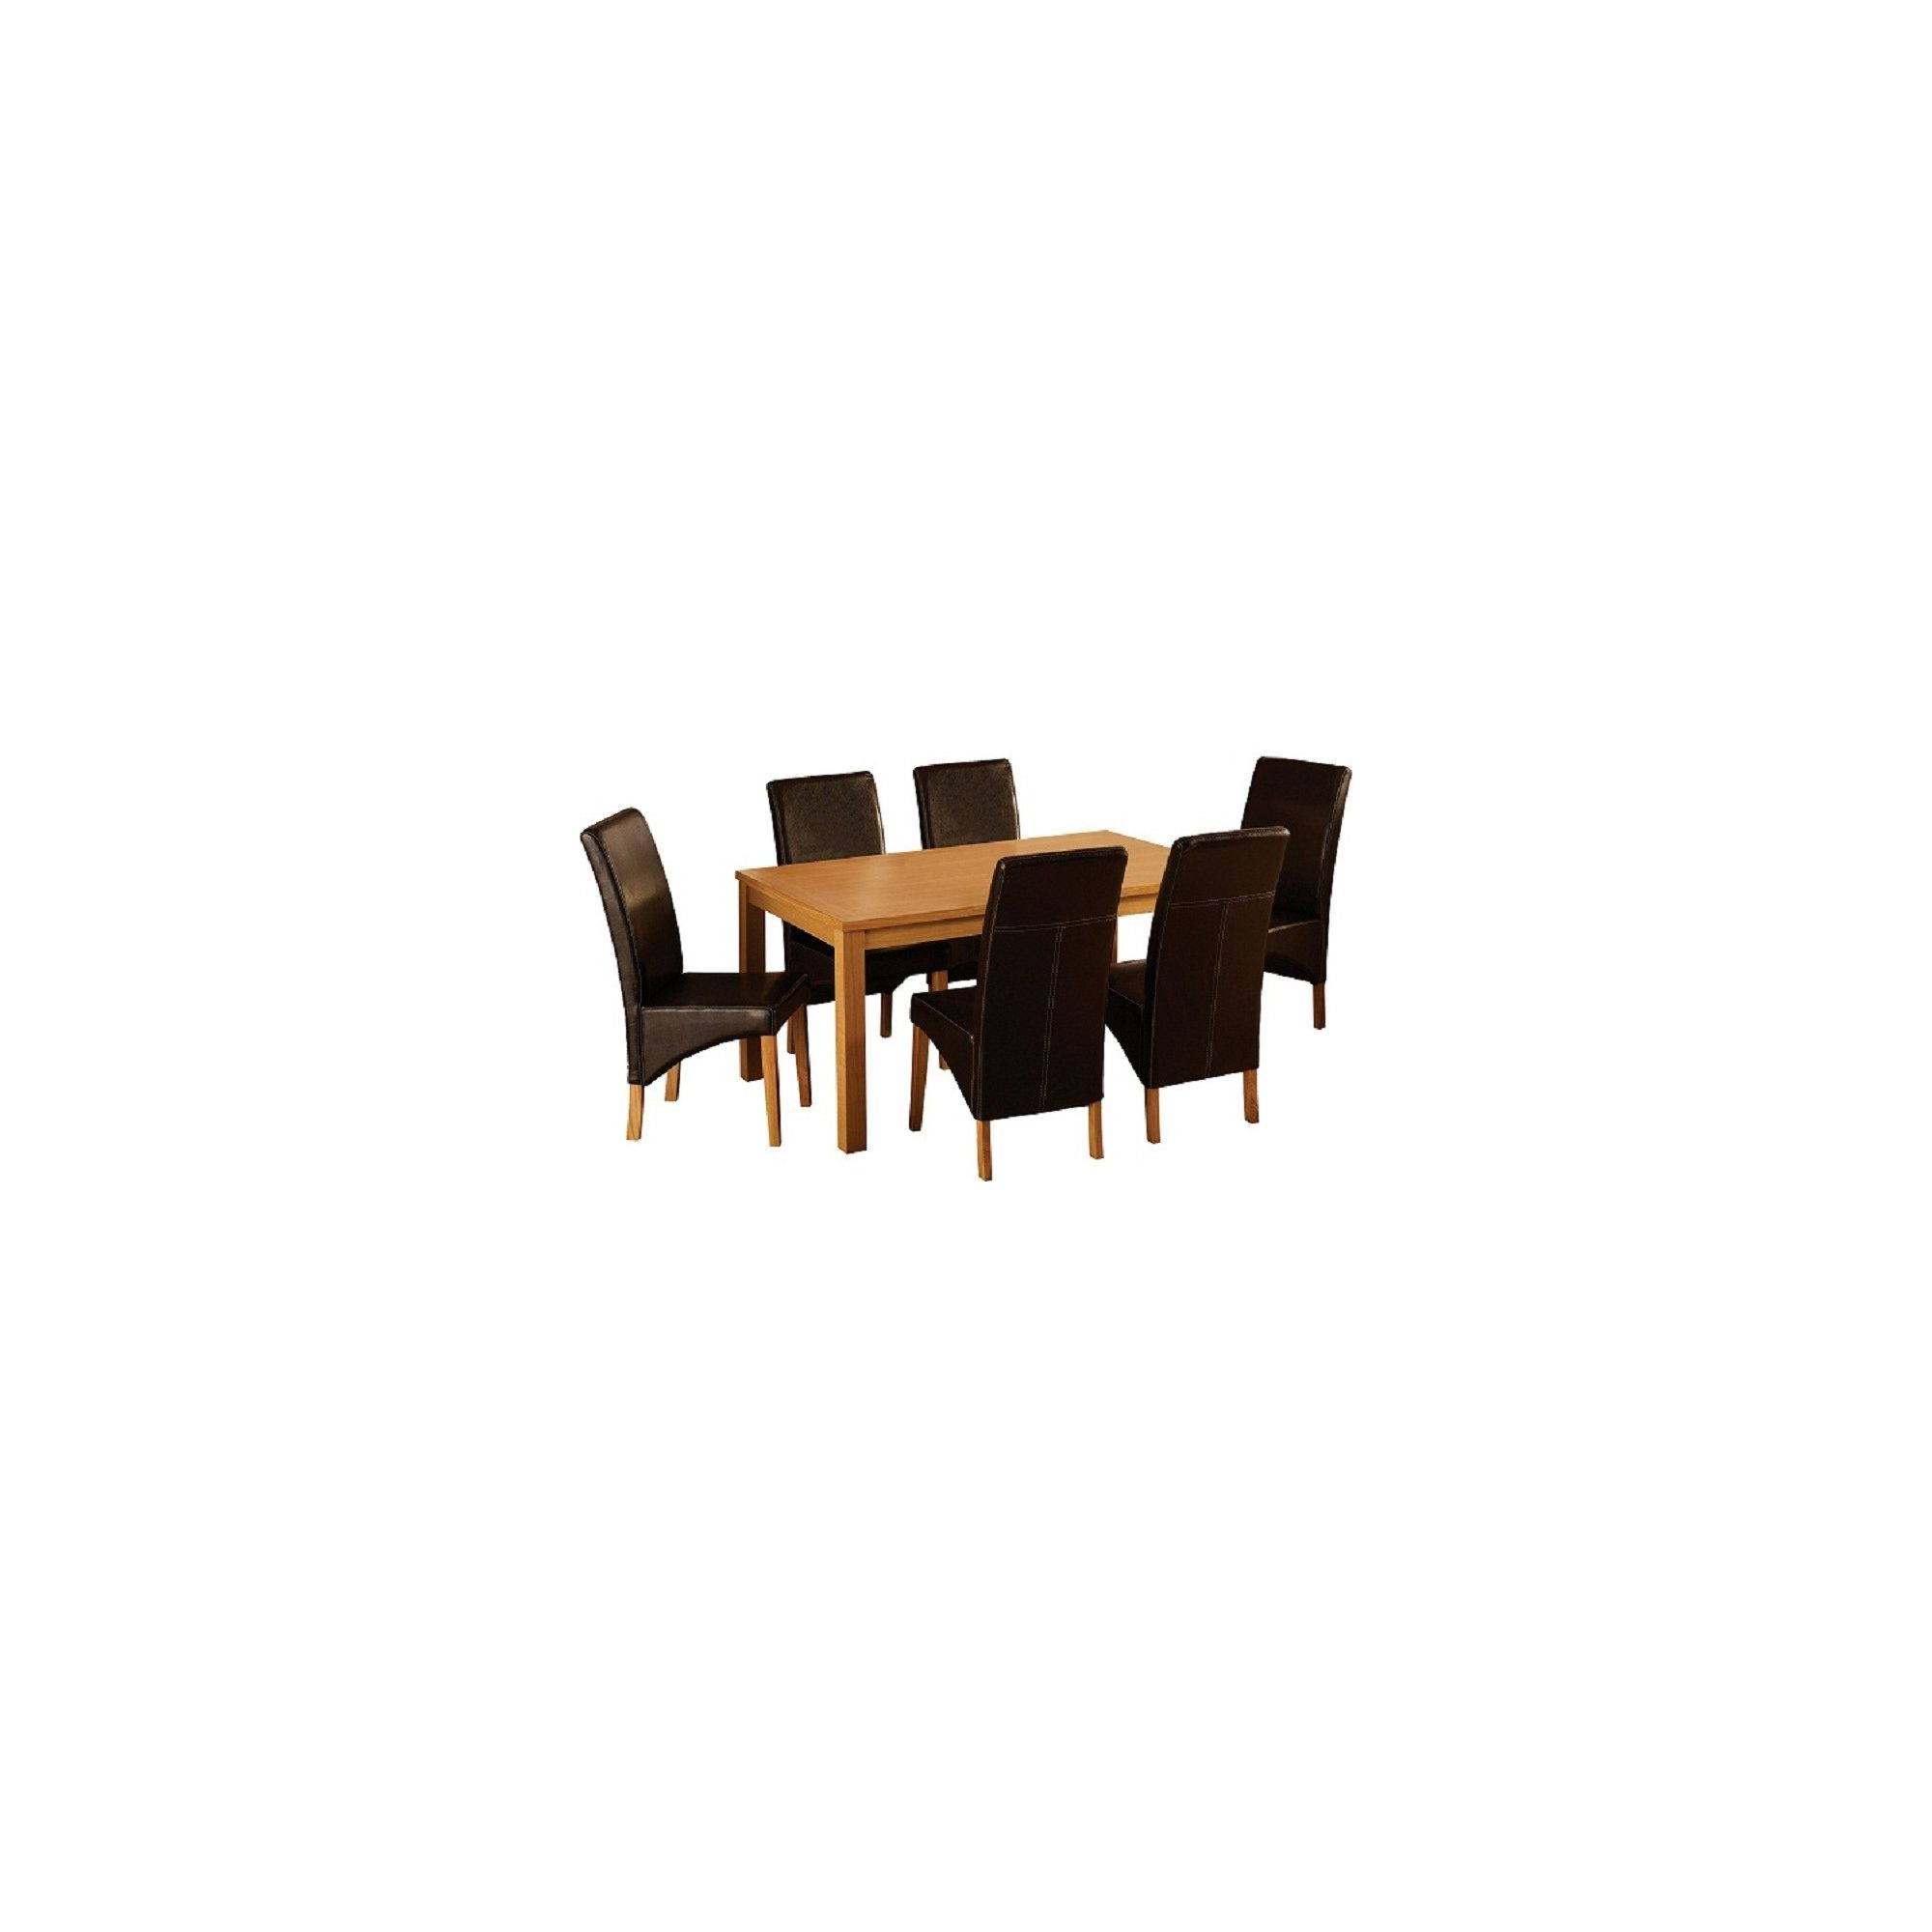 Home Essence Belgravia 7 Piece Dining Set - Espresso Brown at Tesco Direct